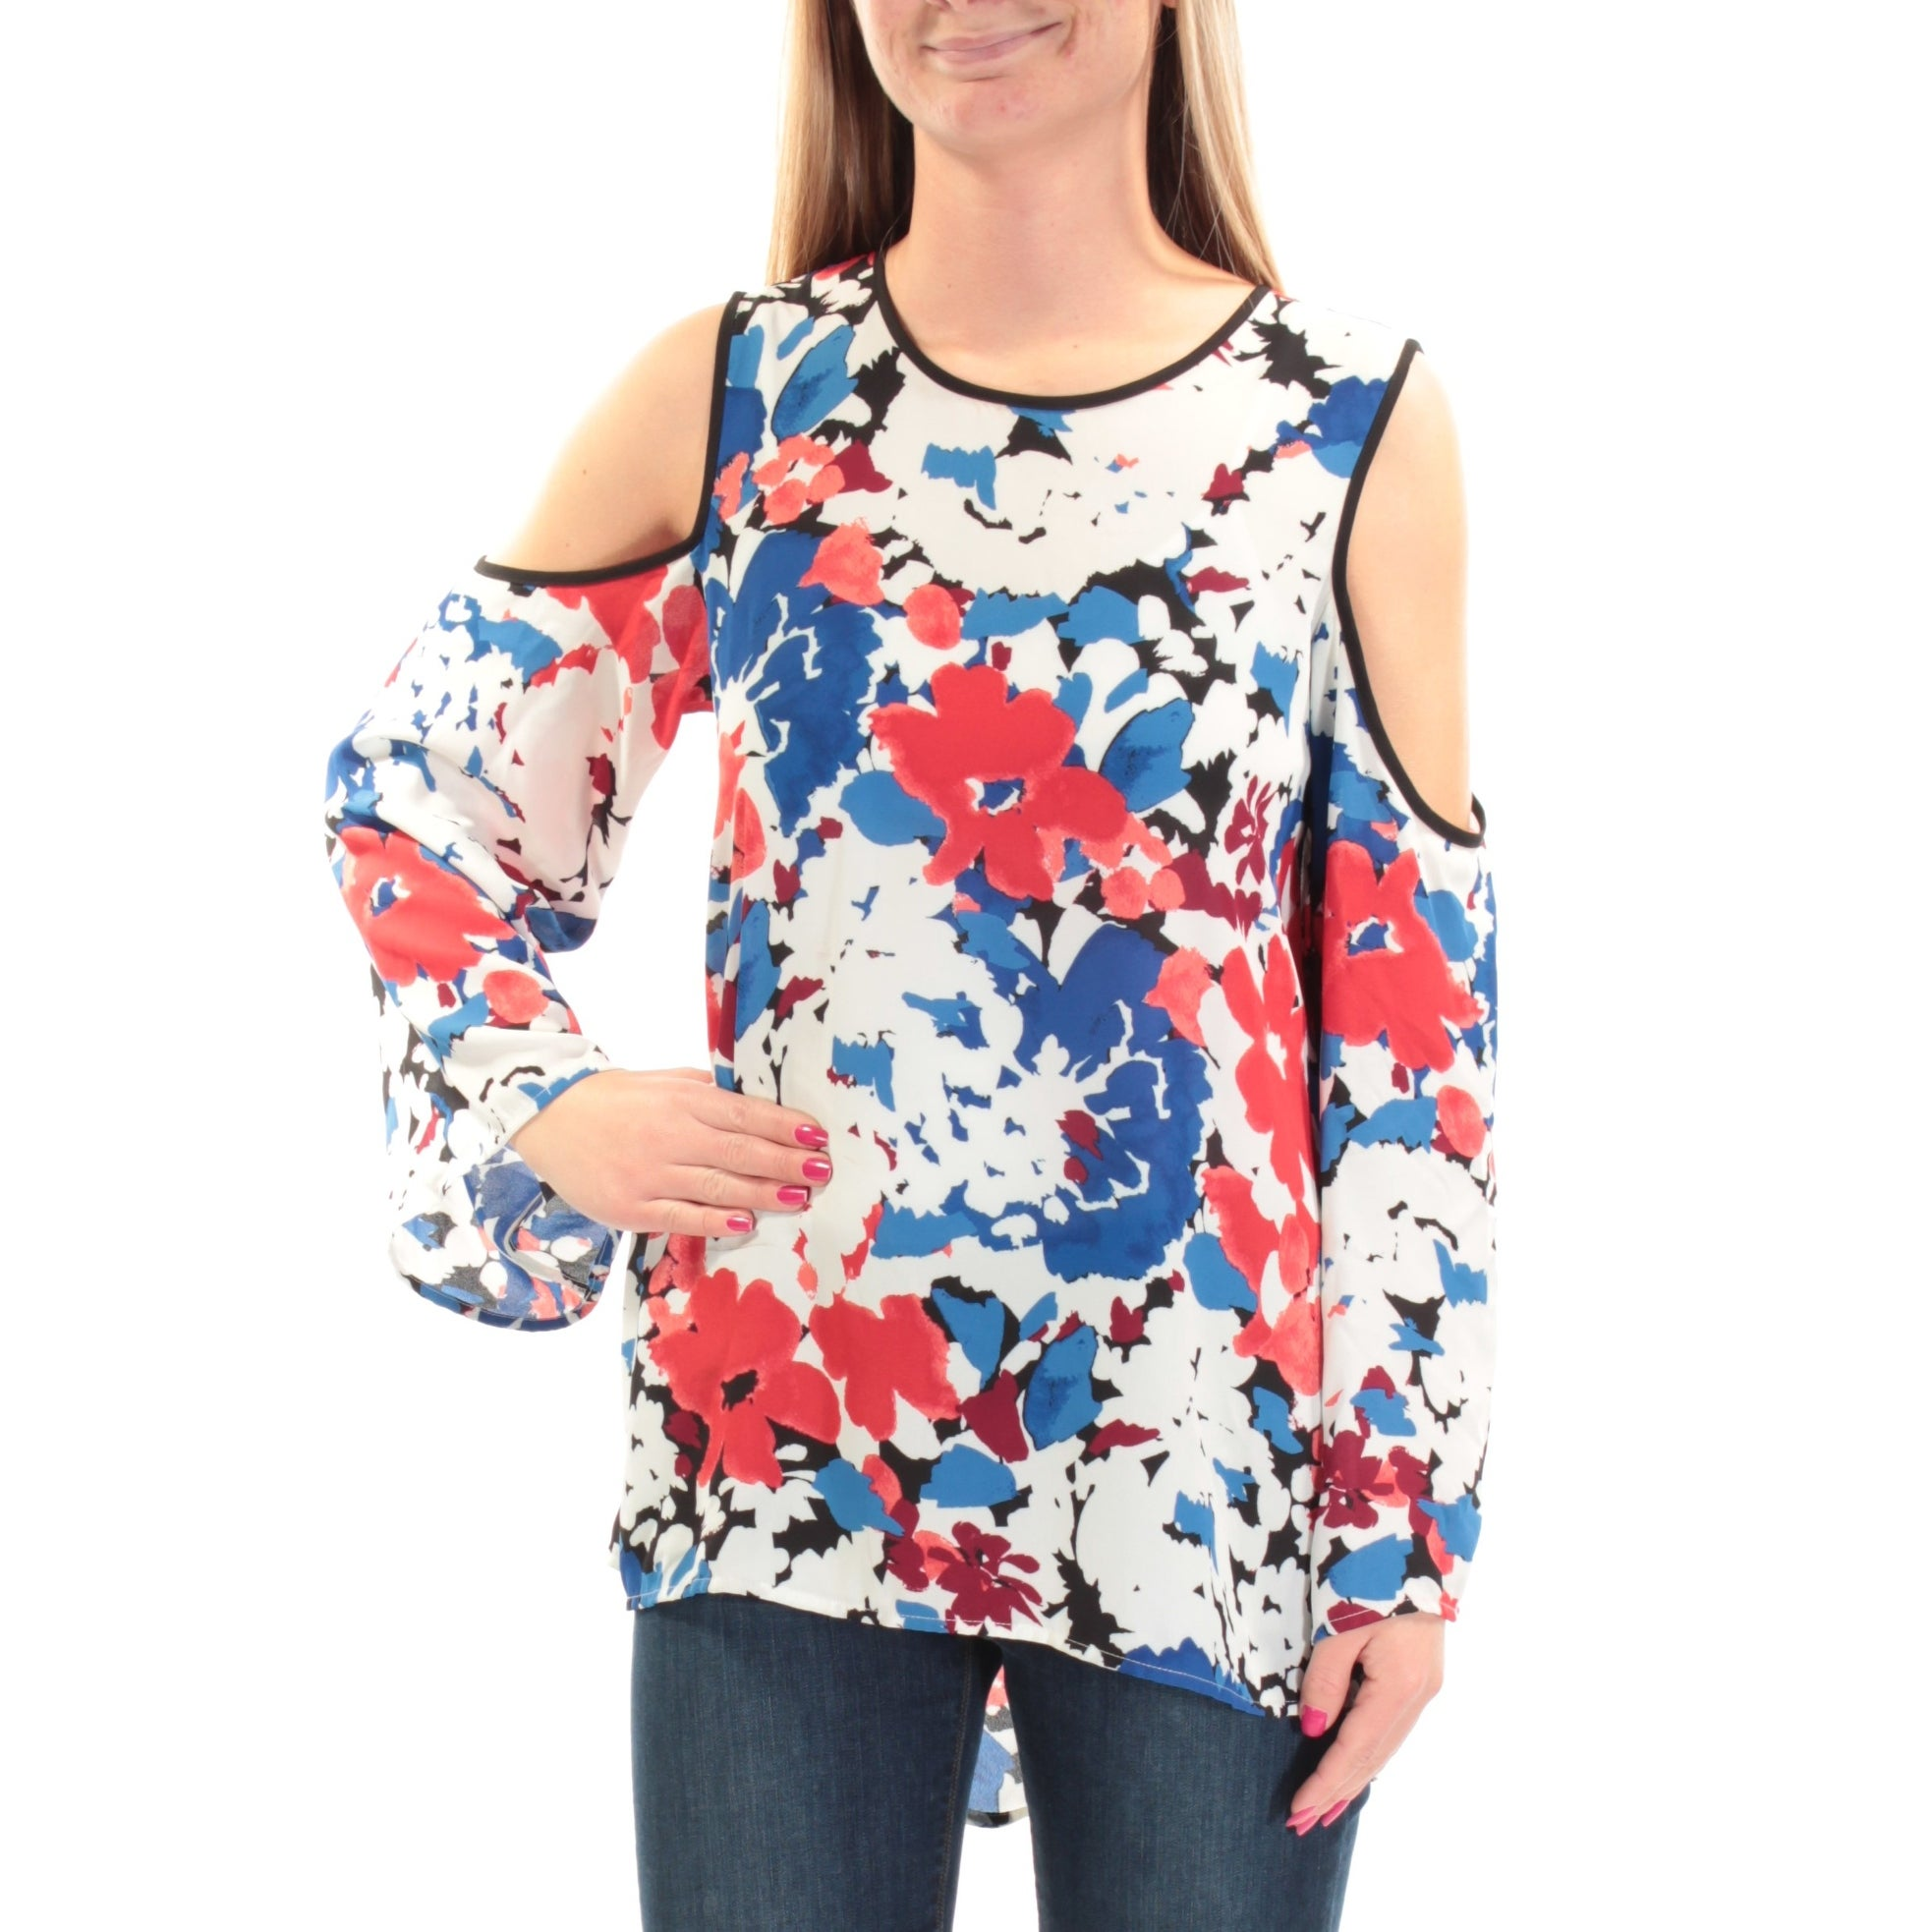 VINCE CAMUTO Womens Top Blue Xs